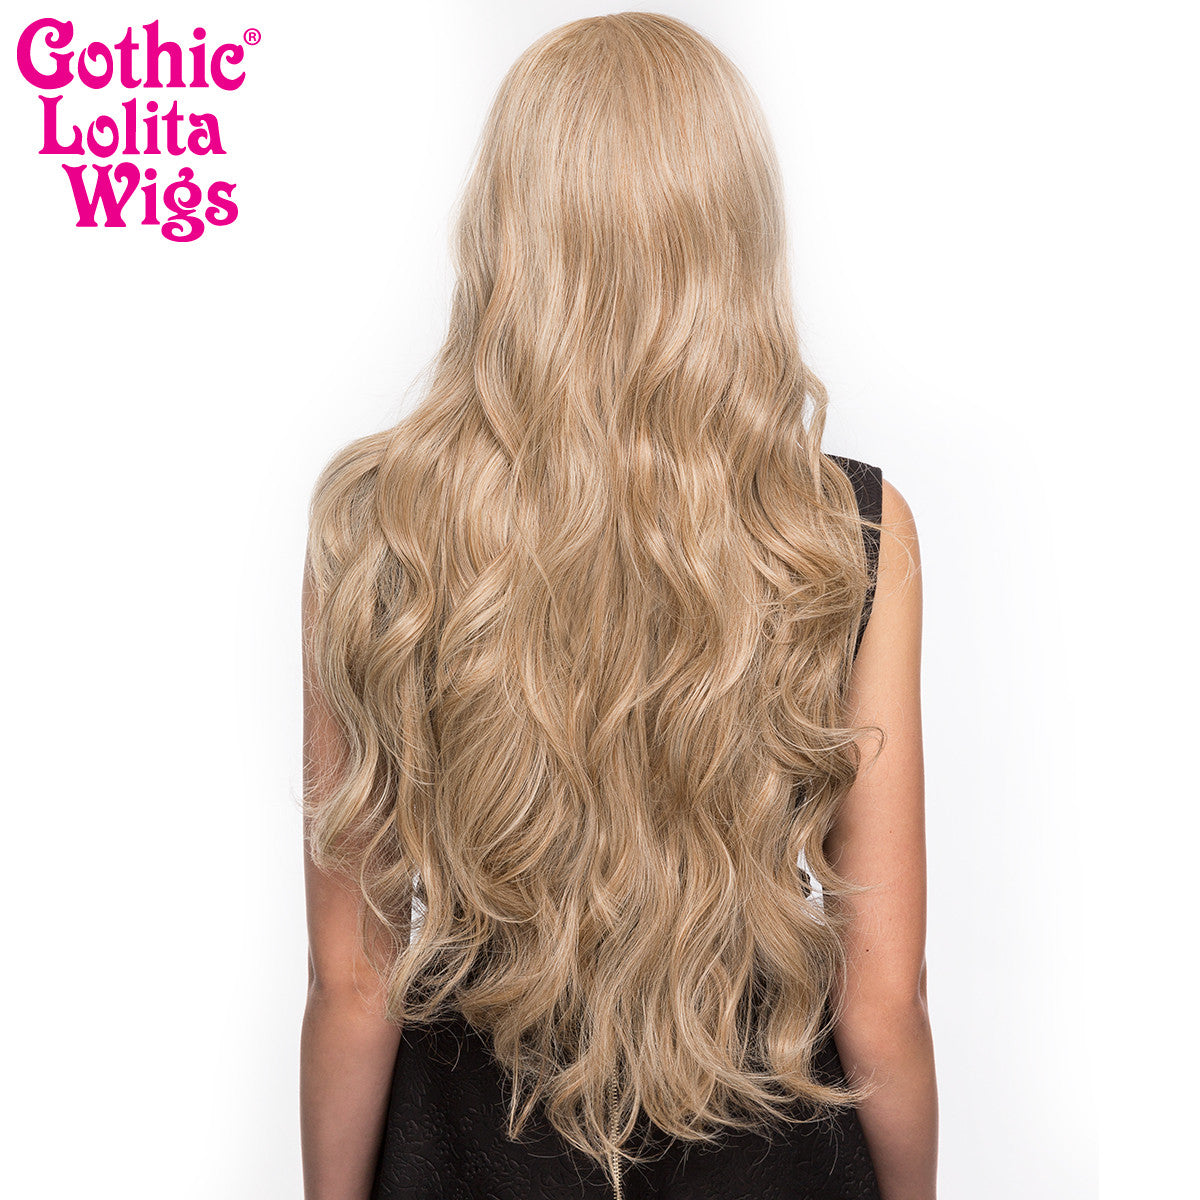 Gothic Lolita Wigs® <br>Ulzzang Collection - Light Medium Blonde Mix -00412